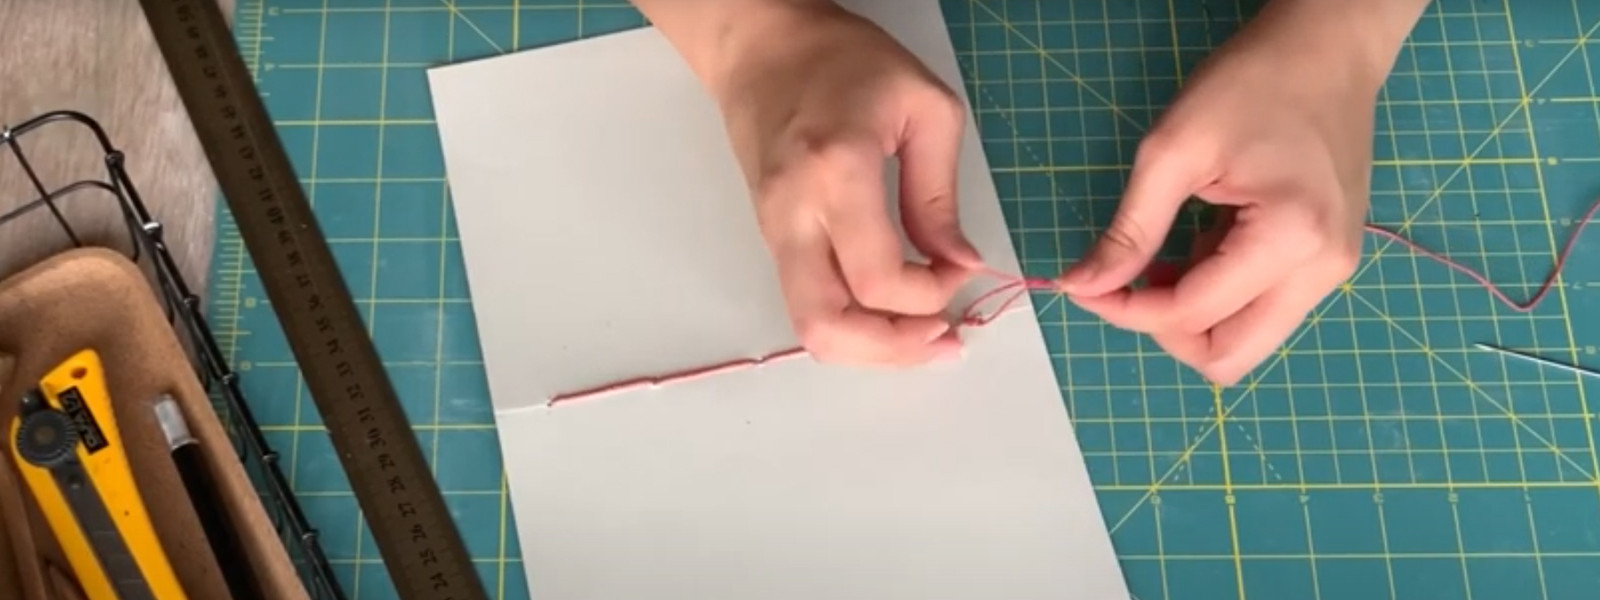 Tutorials - Bookbinding Tutorial: Saddle Stitch and Coptic Stitch